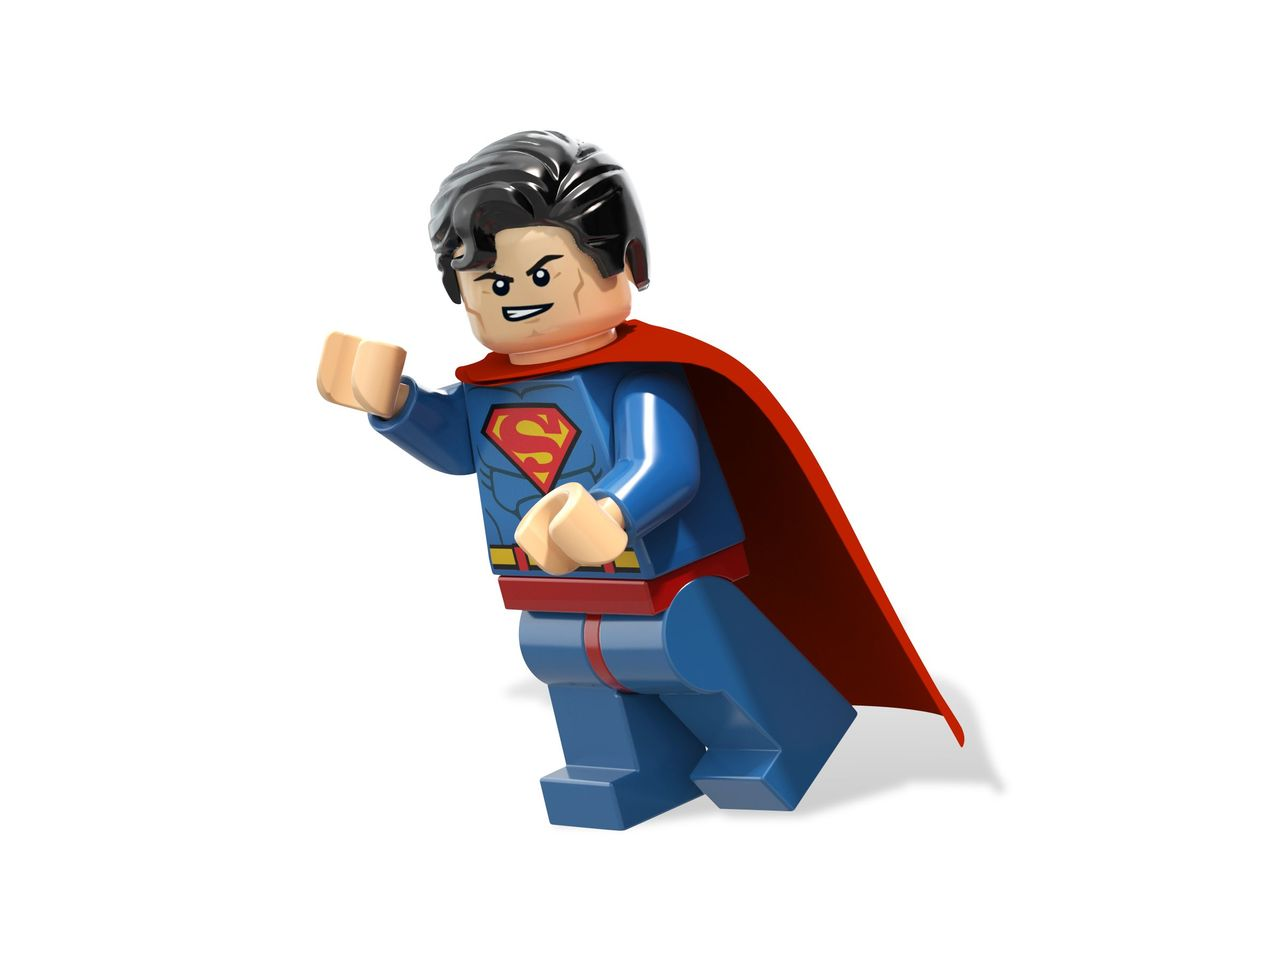 Lego superman clipart svg library Image - Superman 6862.jpg | Lego Super Heroes Wiki | Fandom ... svg library